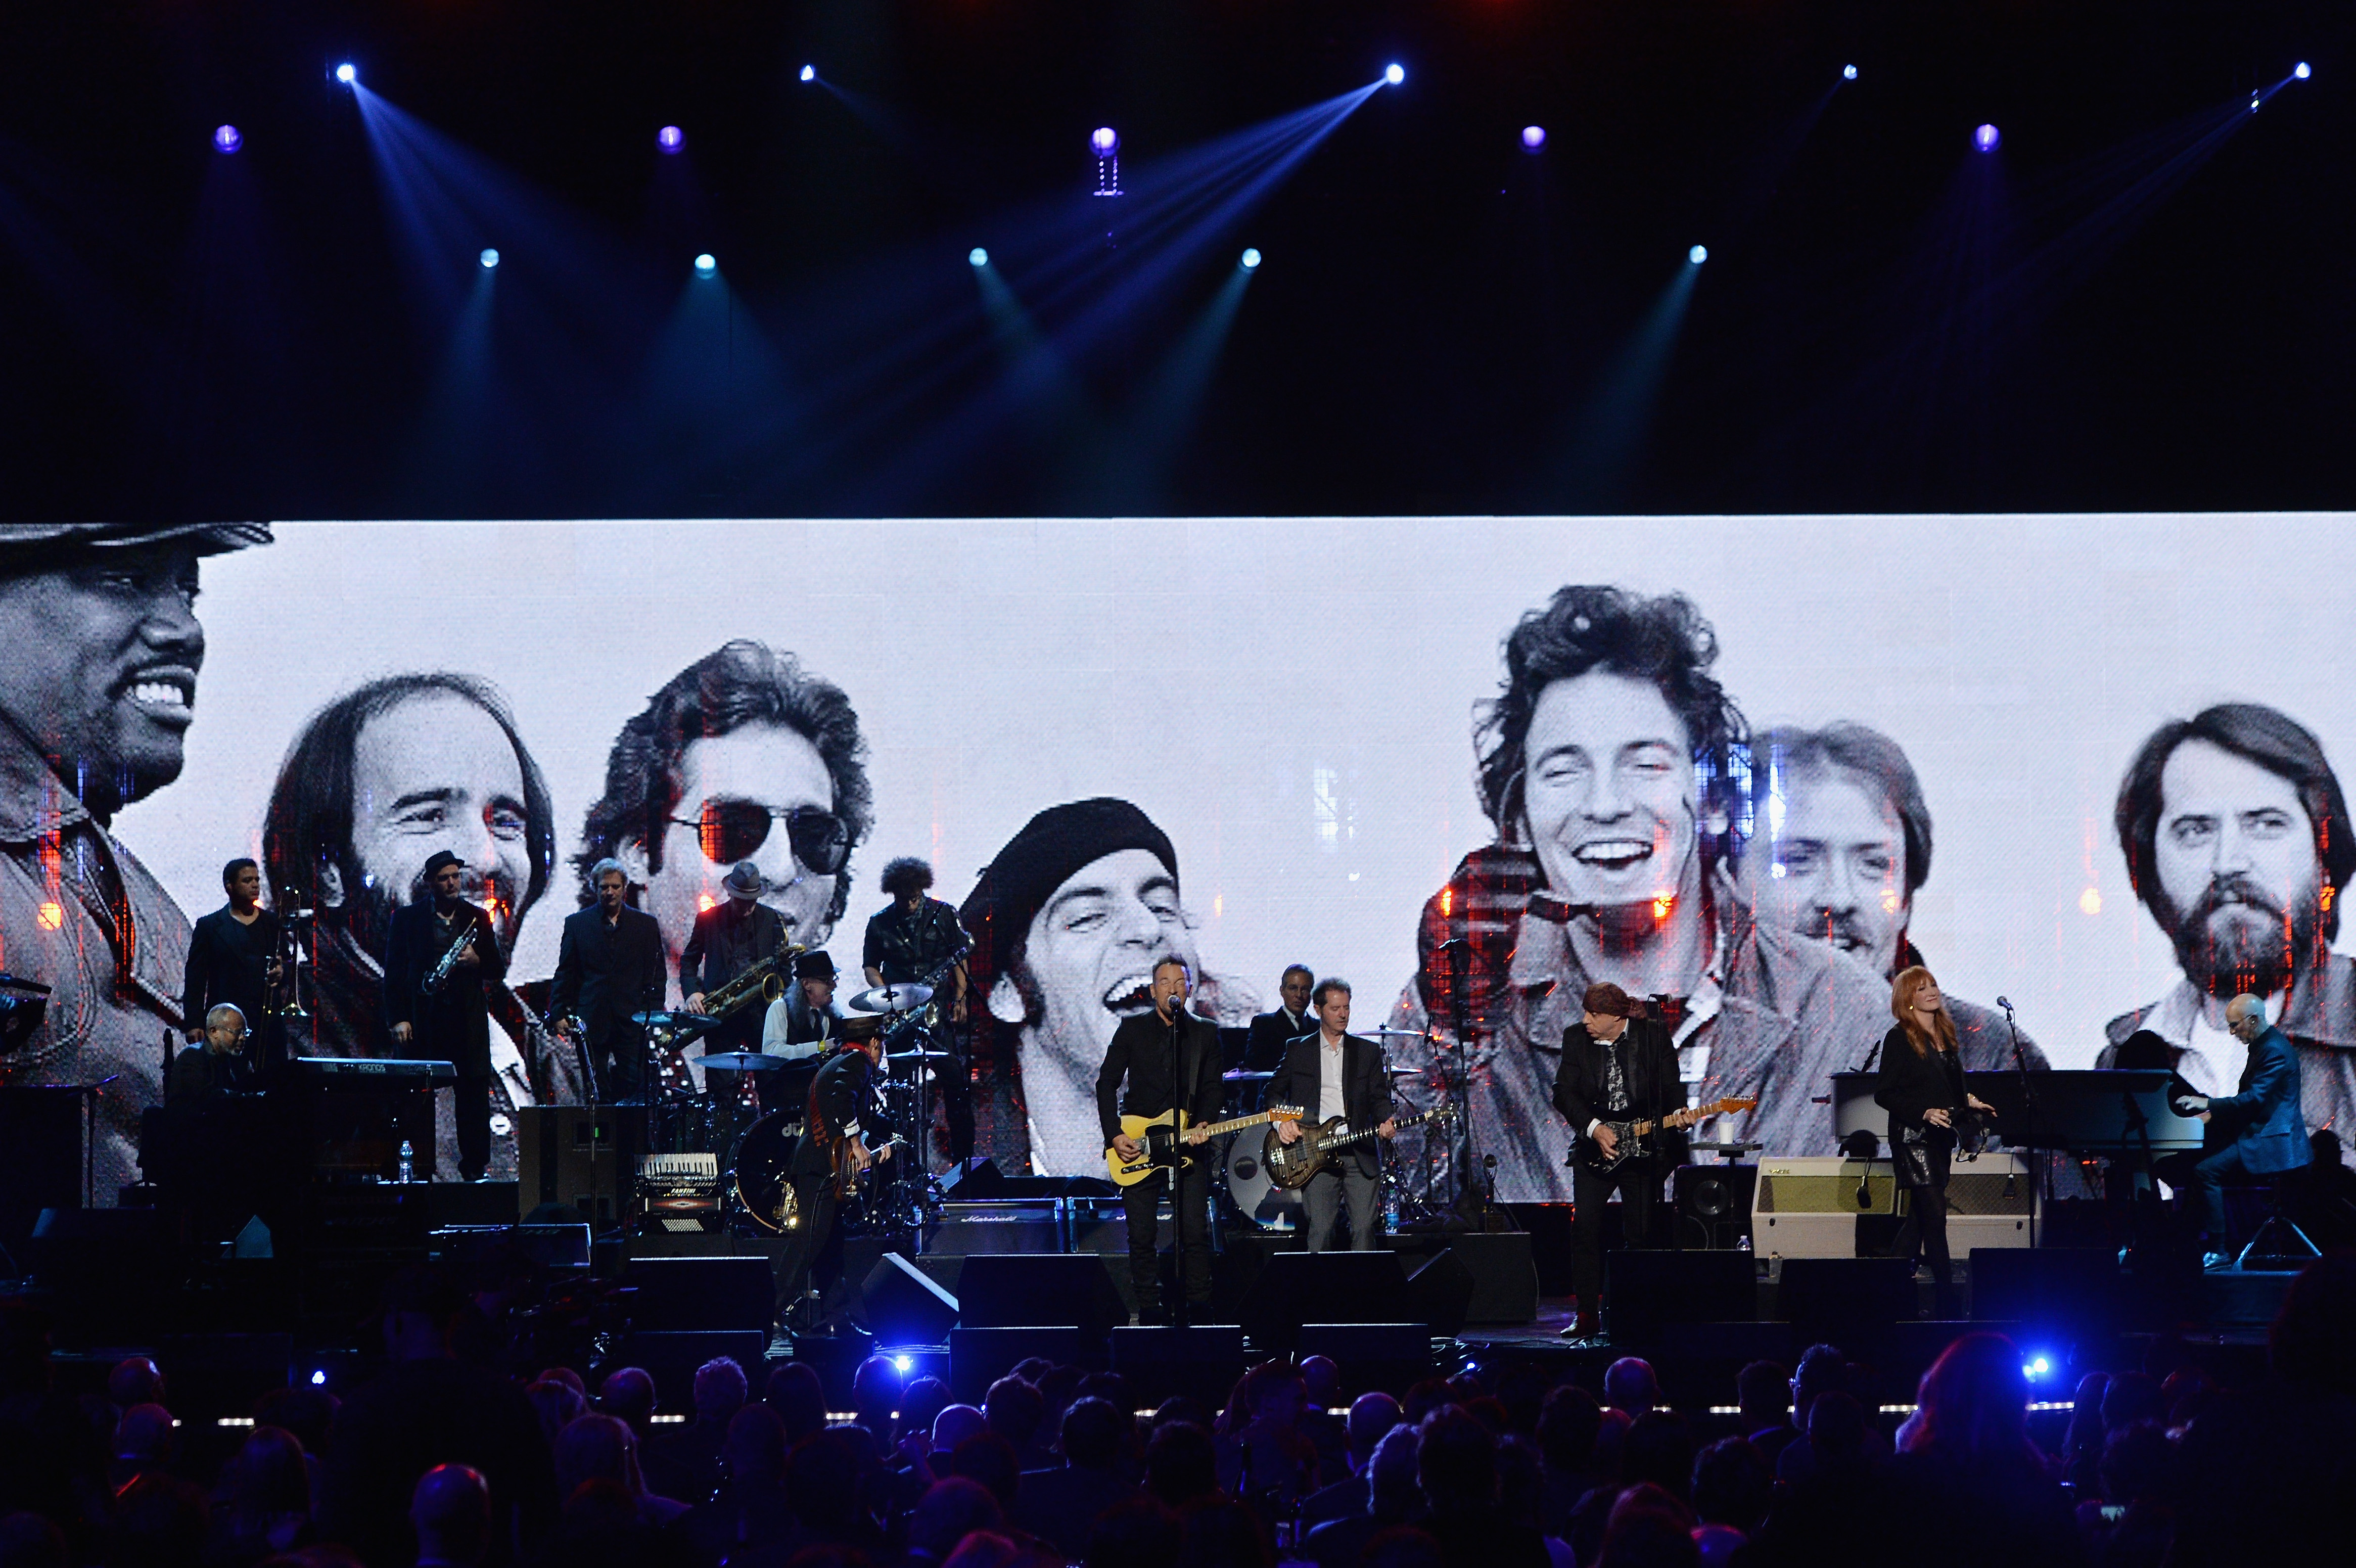 Performers onstage at the 29th Annual Rock And Roll Hall Of Fame Induction Ceremony at Barclays Center of Brooklyn on April 10, 2014 in New York City.